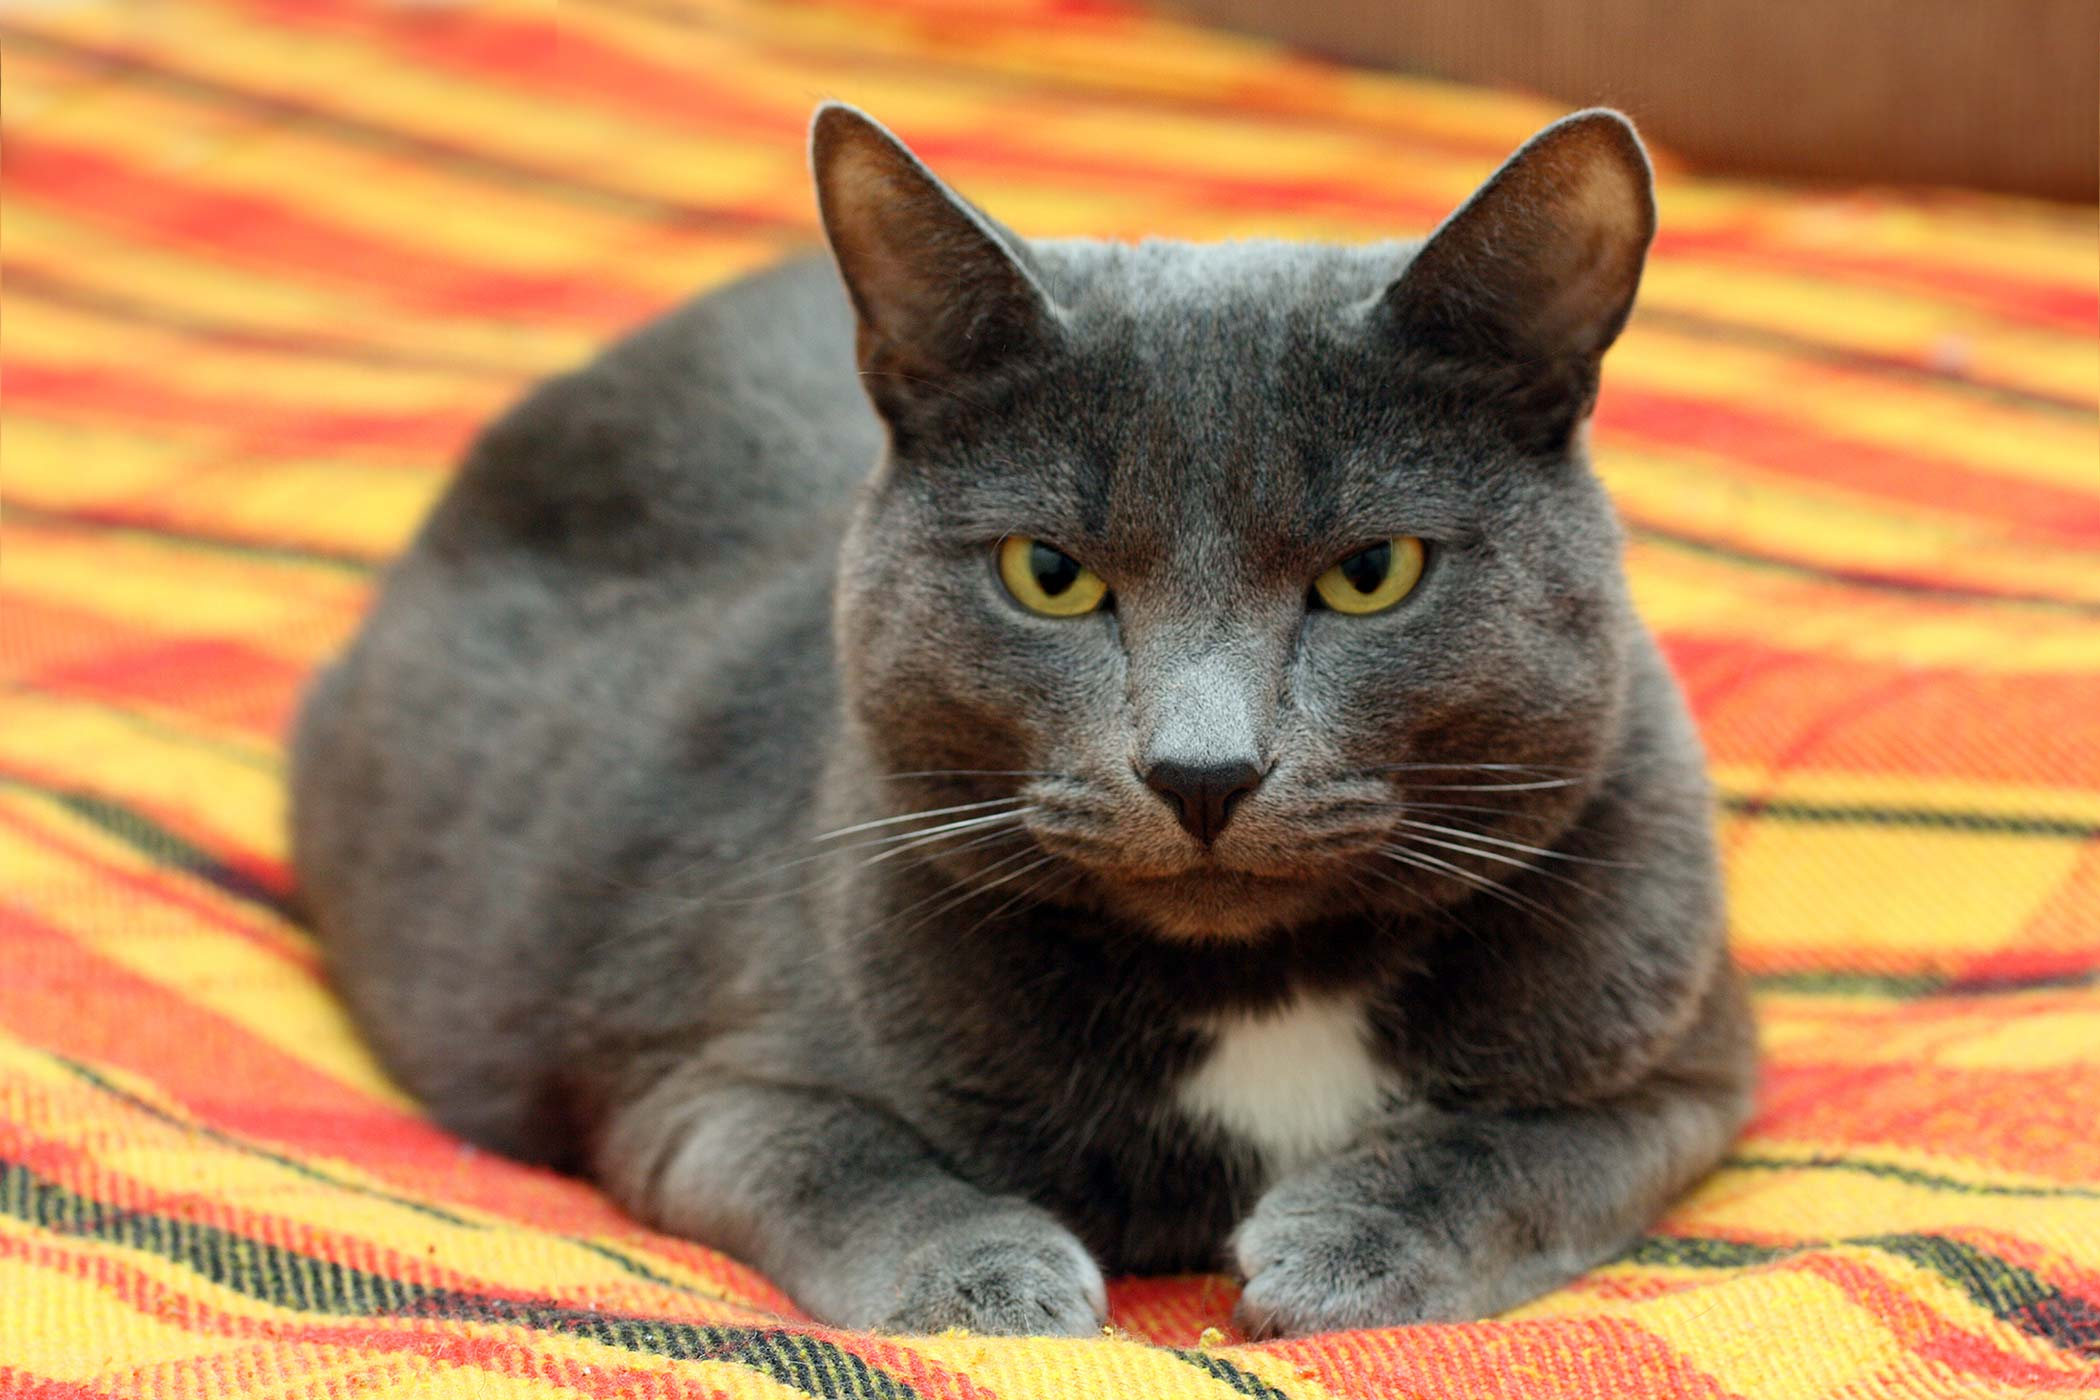 Spinal Cord Inflammation in Cats